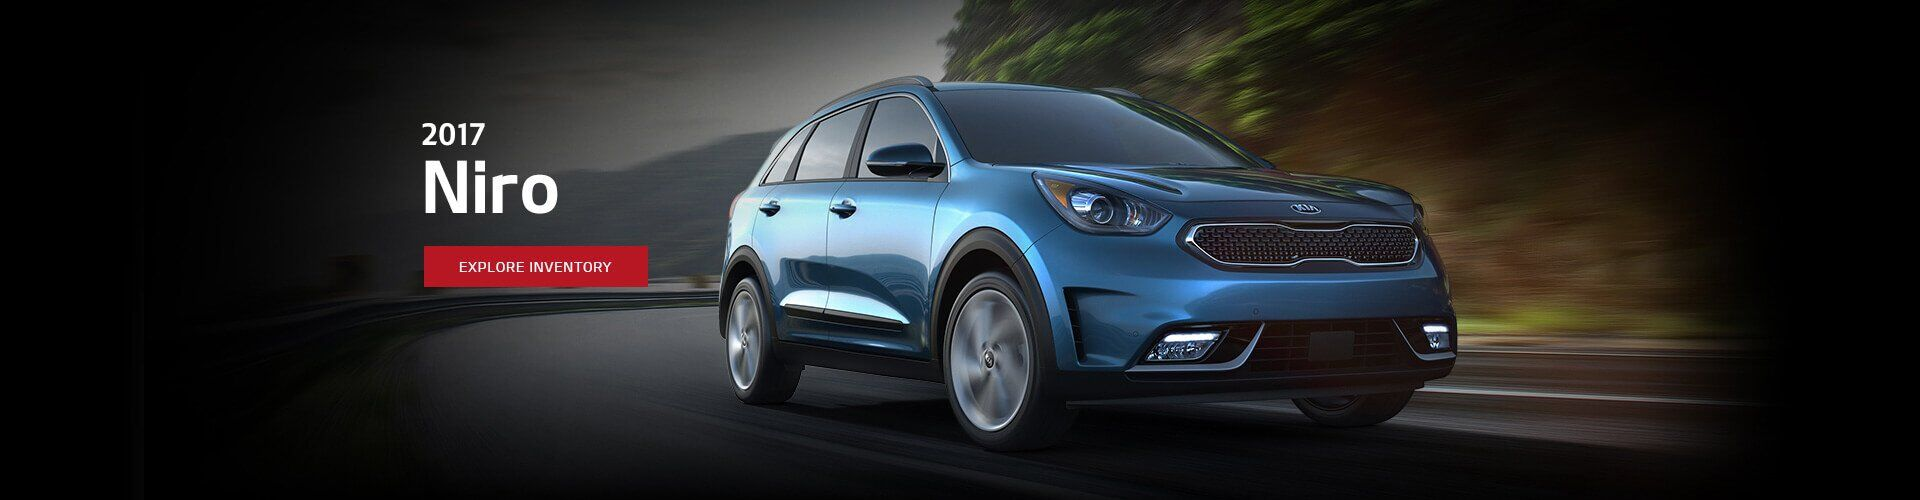 New Kia Niro at Paul Cerame Kia